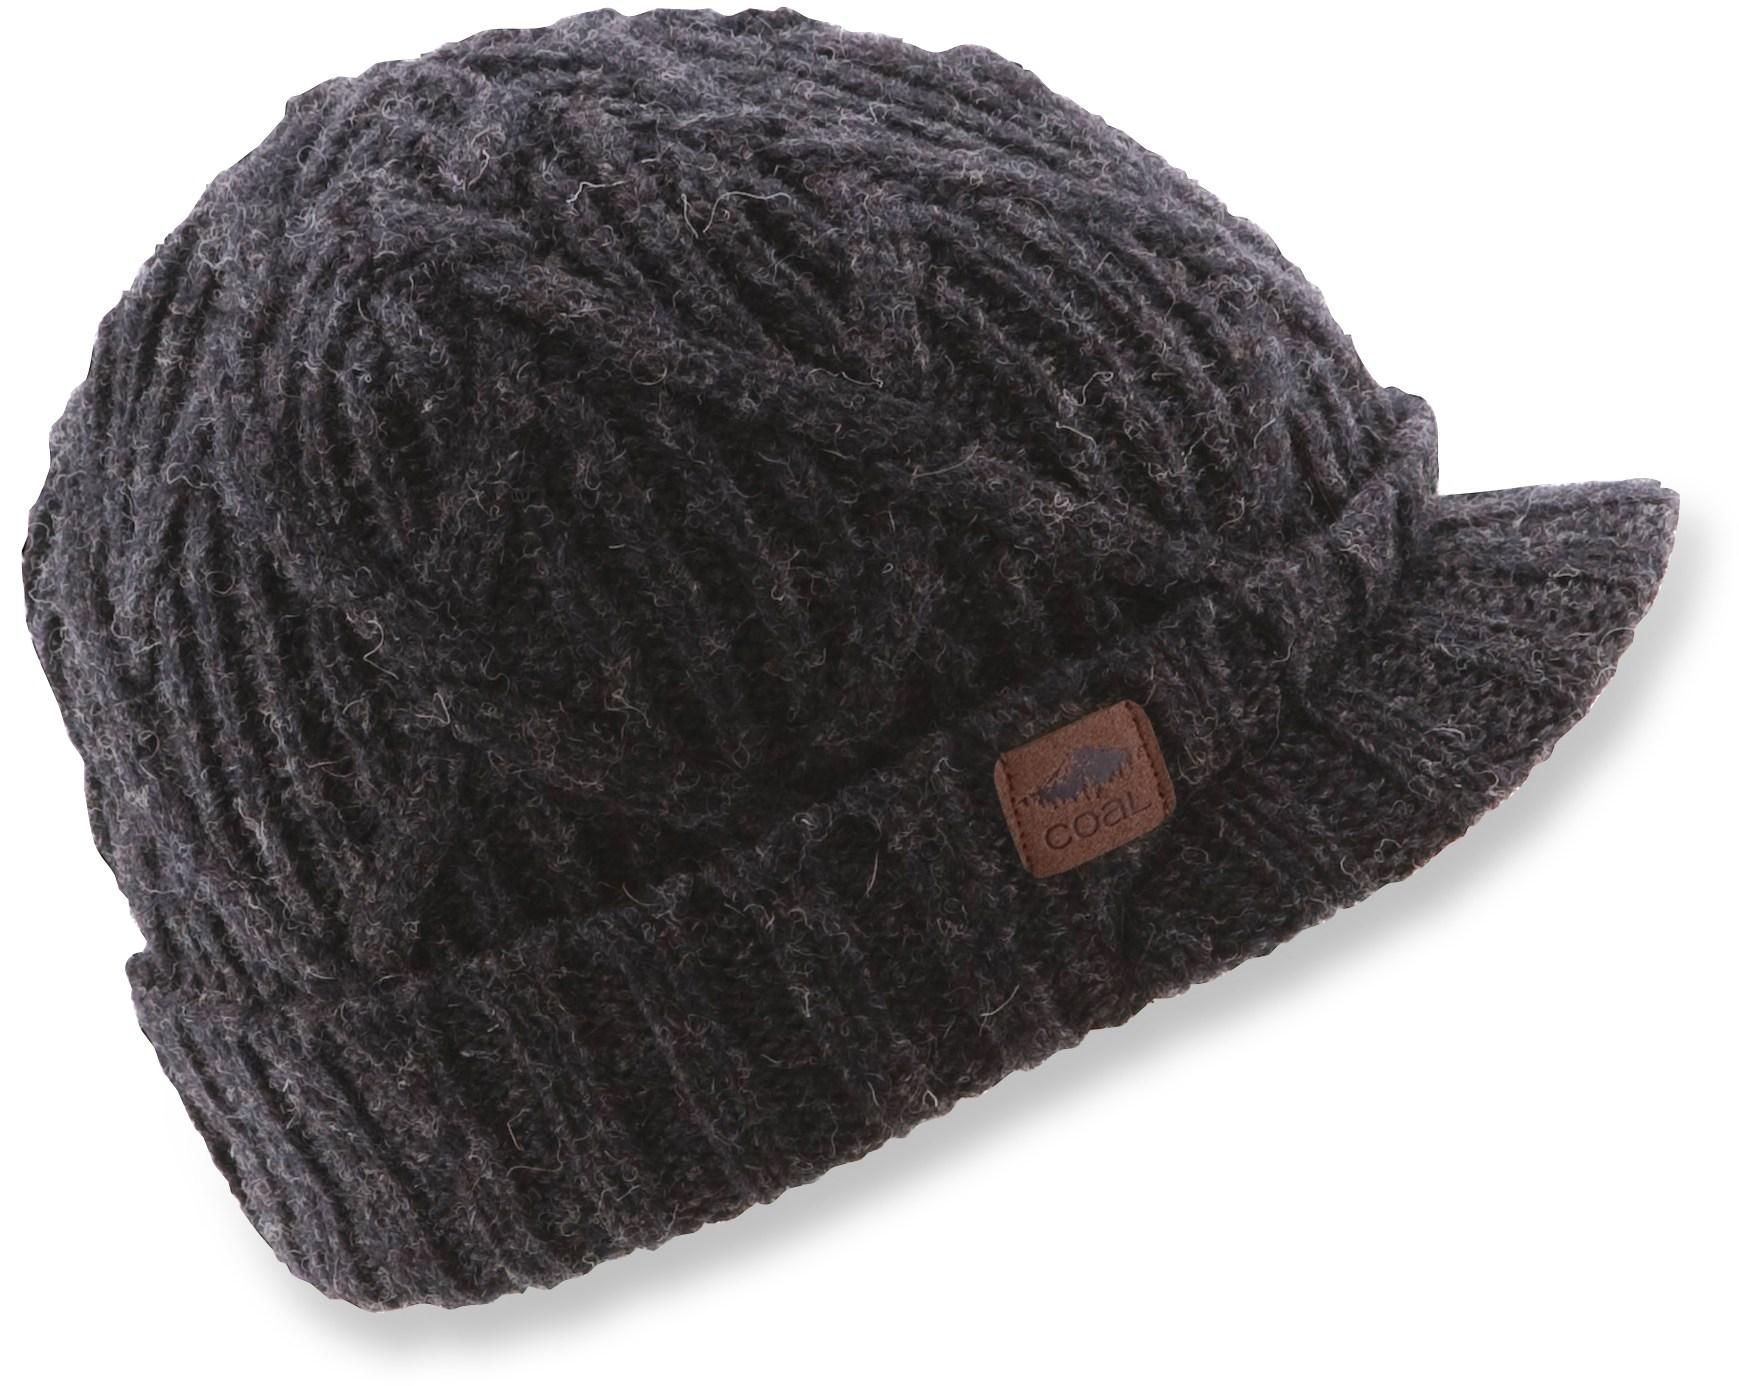 62bf864c8be The Coal Yukon Brim beanie offers a traditional fit and features a roll-up  cuff with a brim.